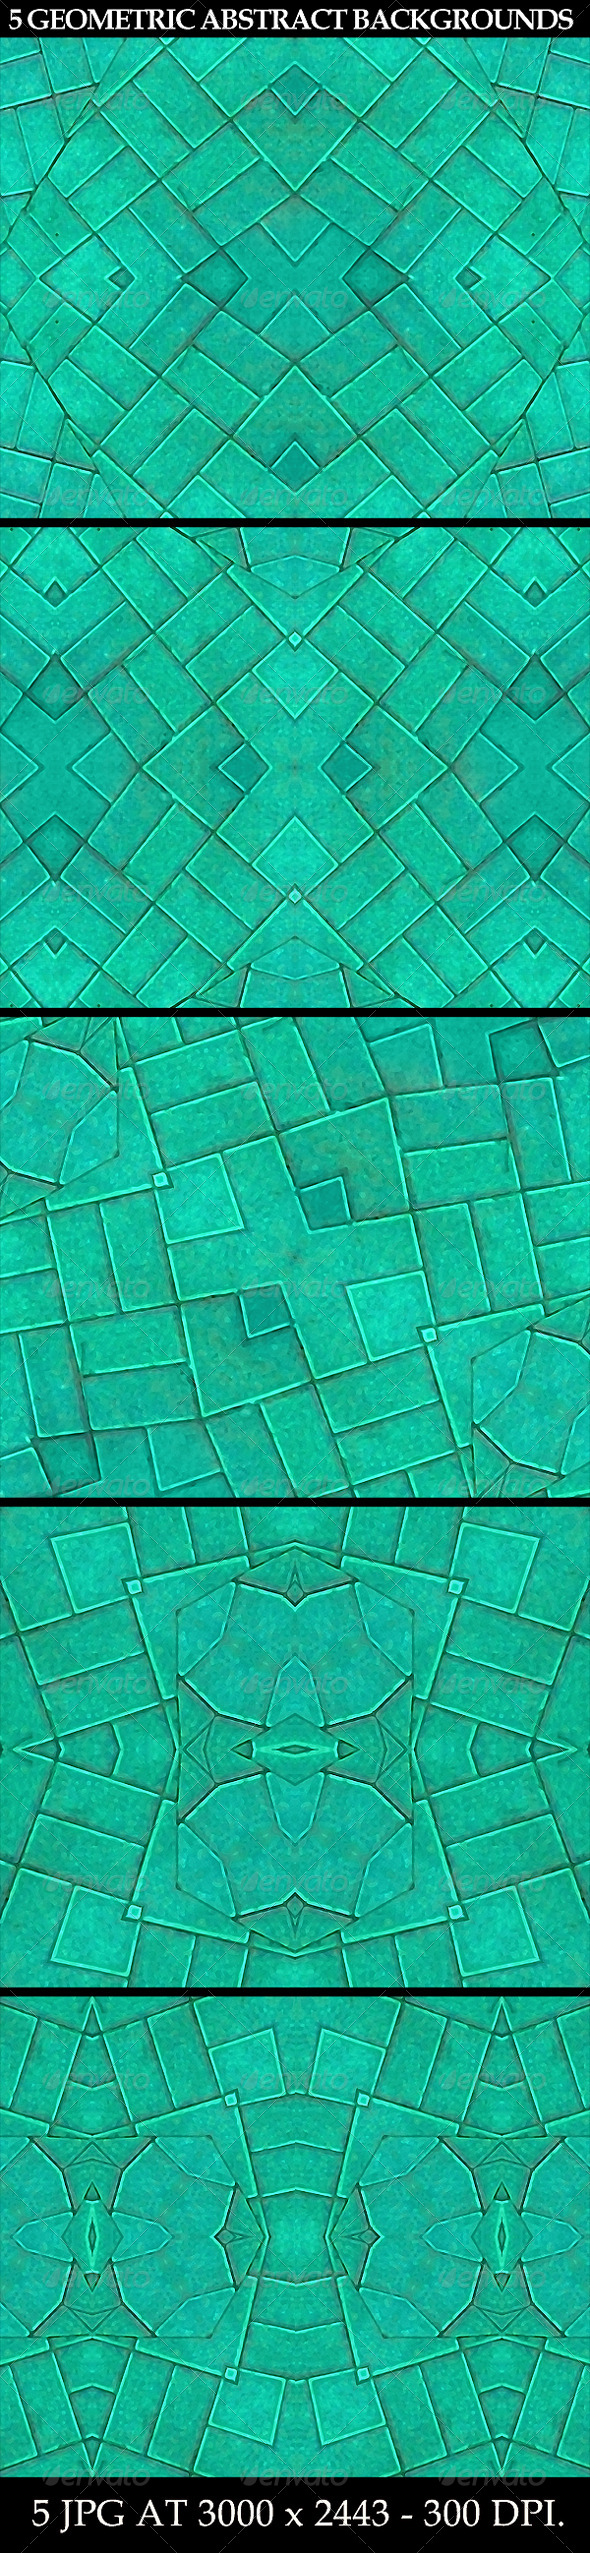 5 Geometric Abstract Backgrounds